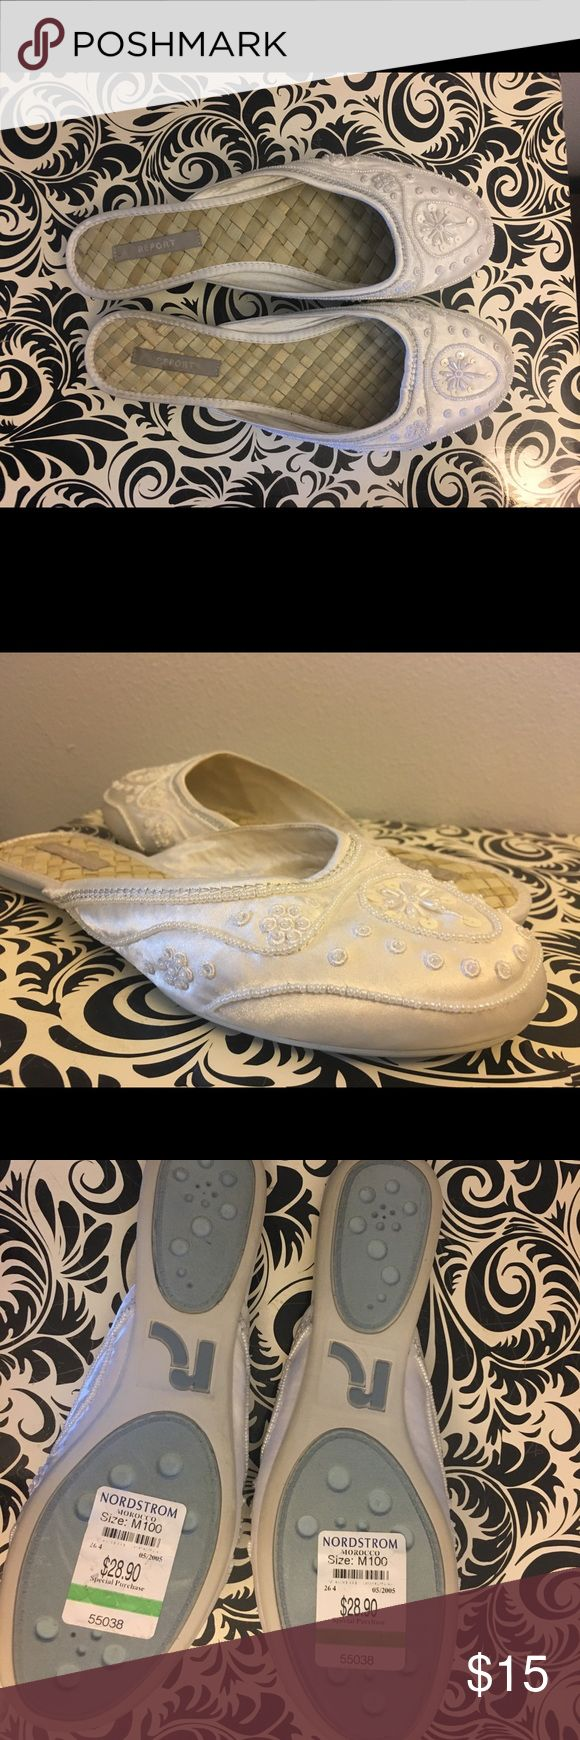 NIB - Report White Beaded Slides - Size 10 So pretty and delicate. These slides feature a woven insole and a white satin toe with intricate beadwork. They will come with their original box, and they are in new condition. Report Shoes Mules & Clogs